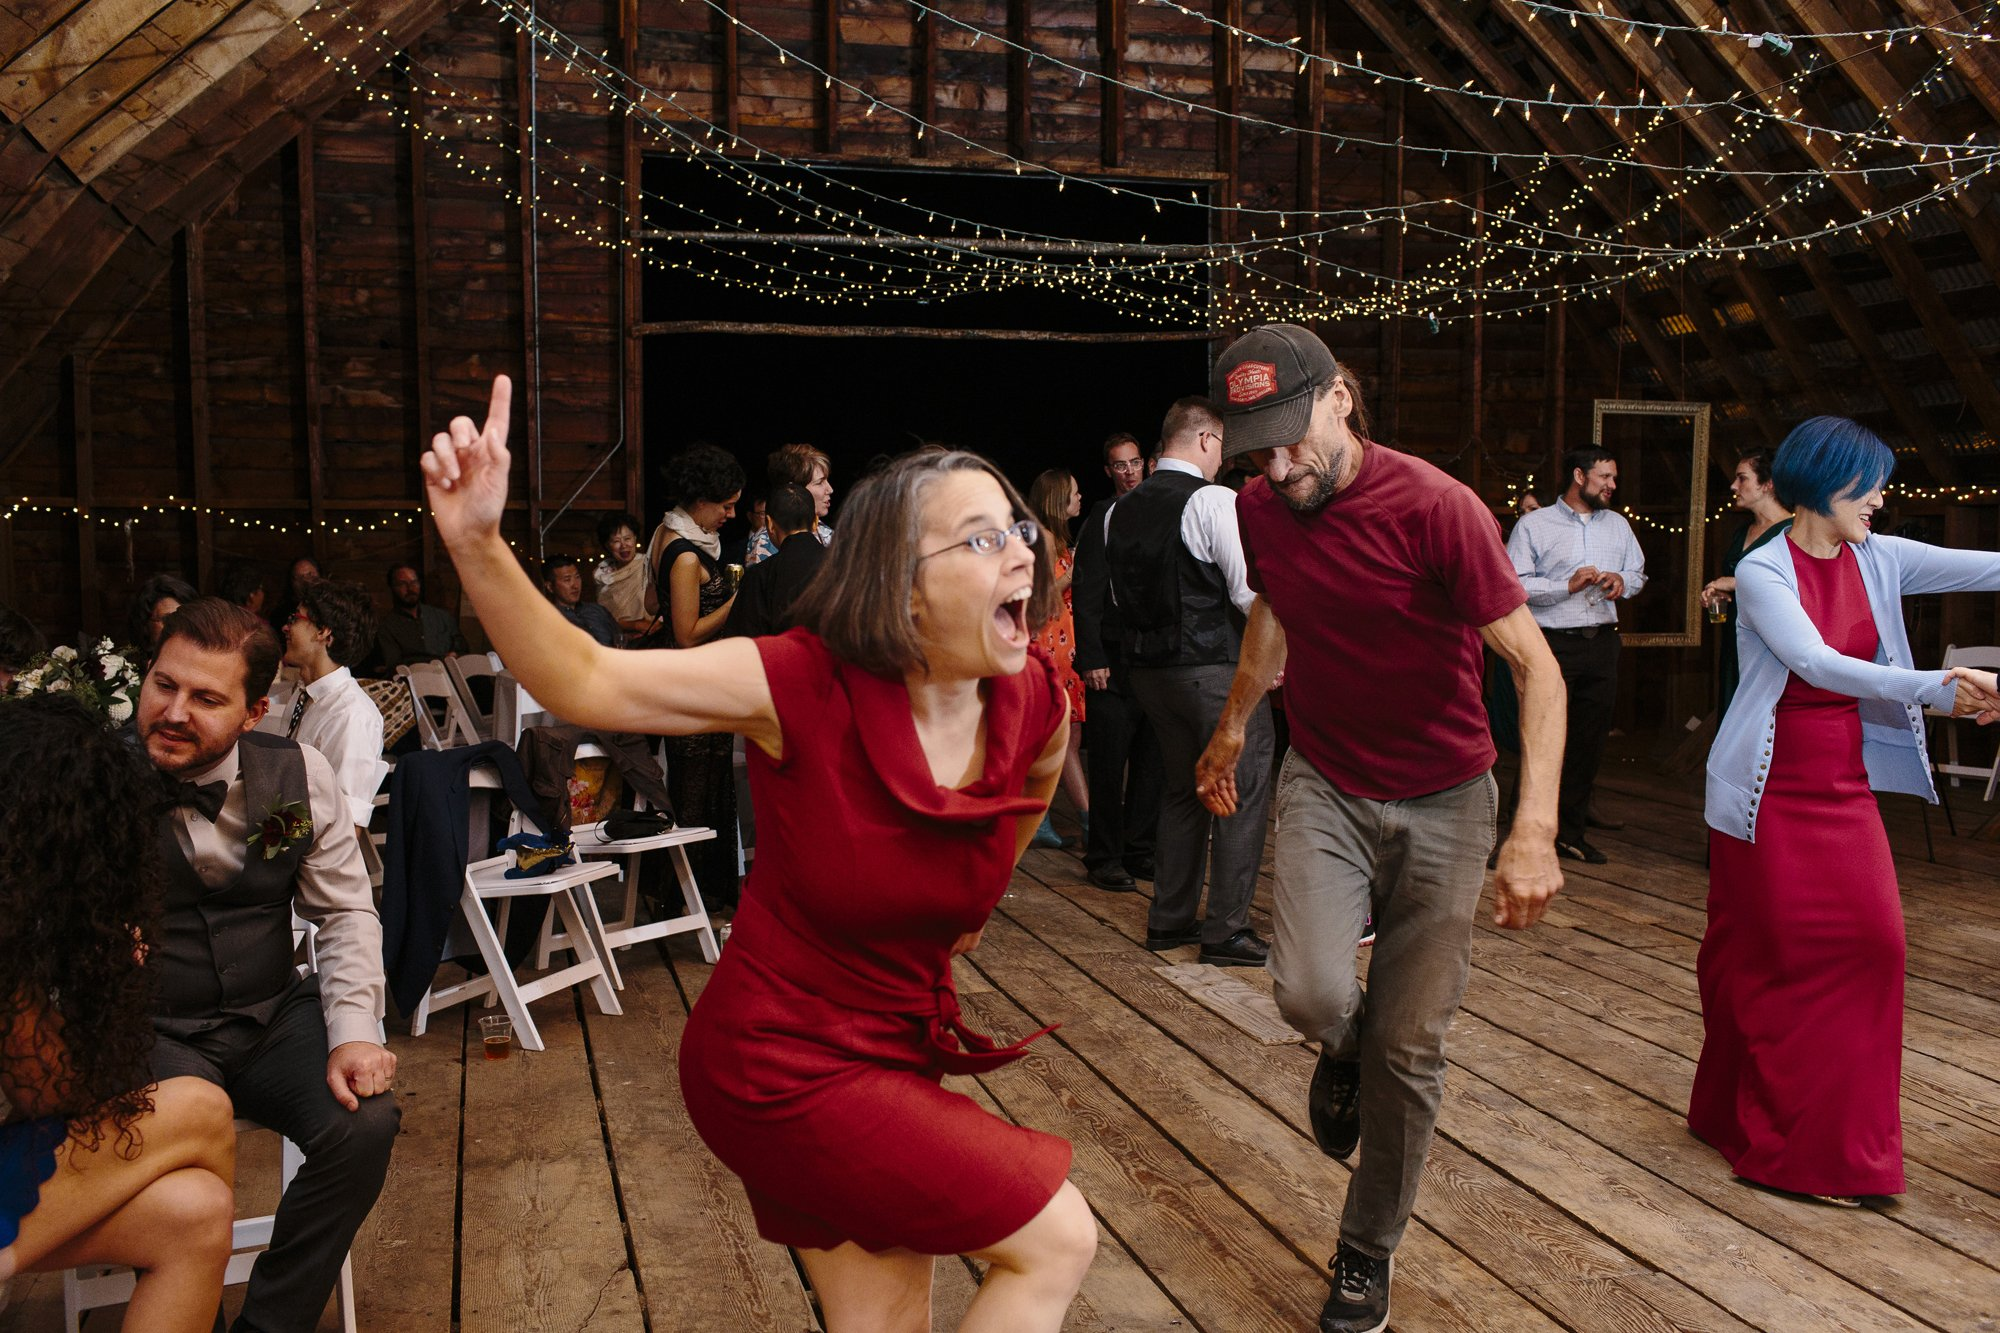 Dancing at a wedding // Methow Valley Wedding Photographer